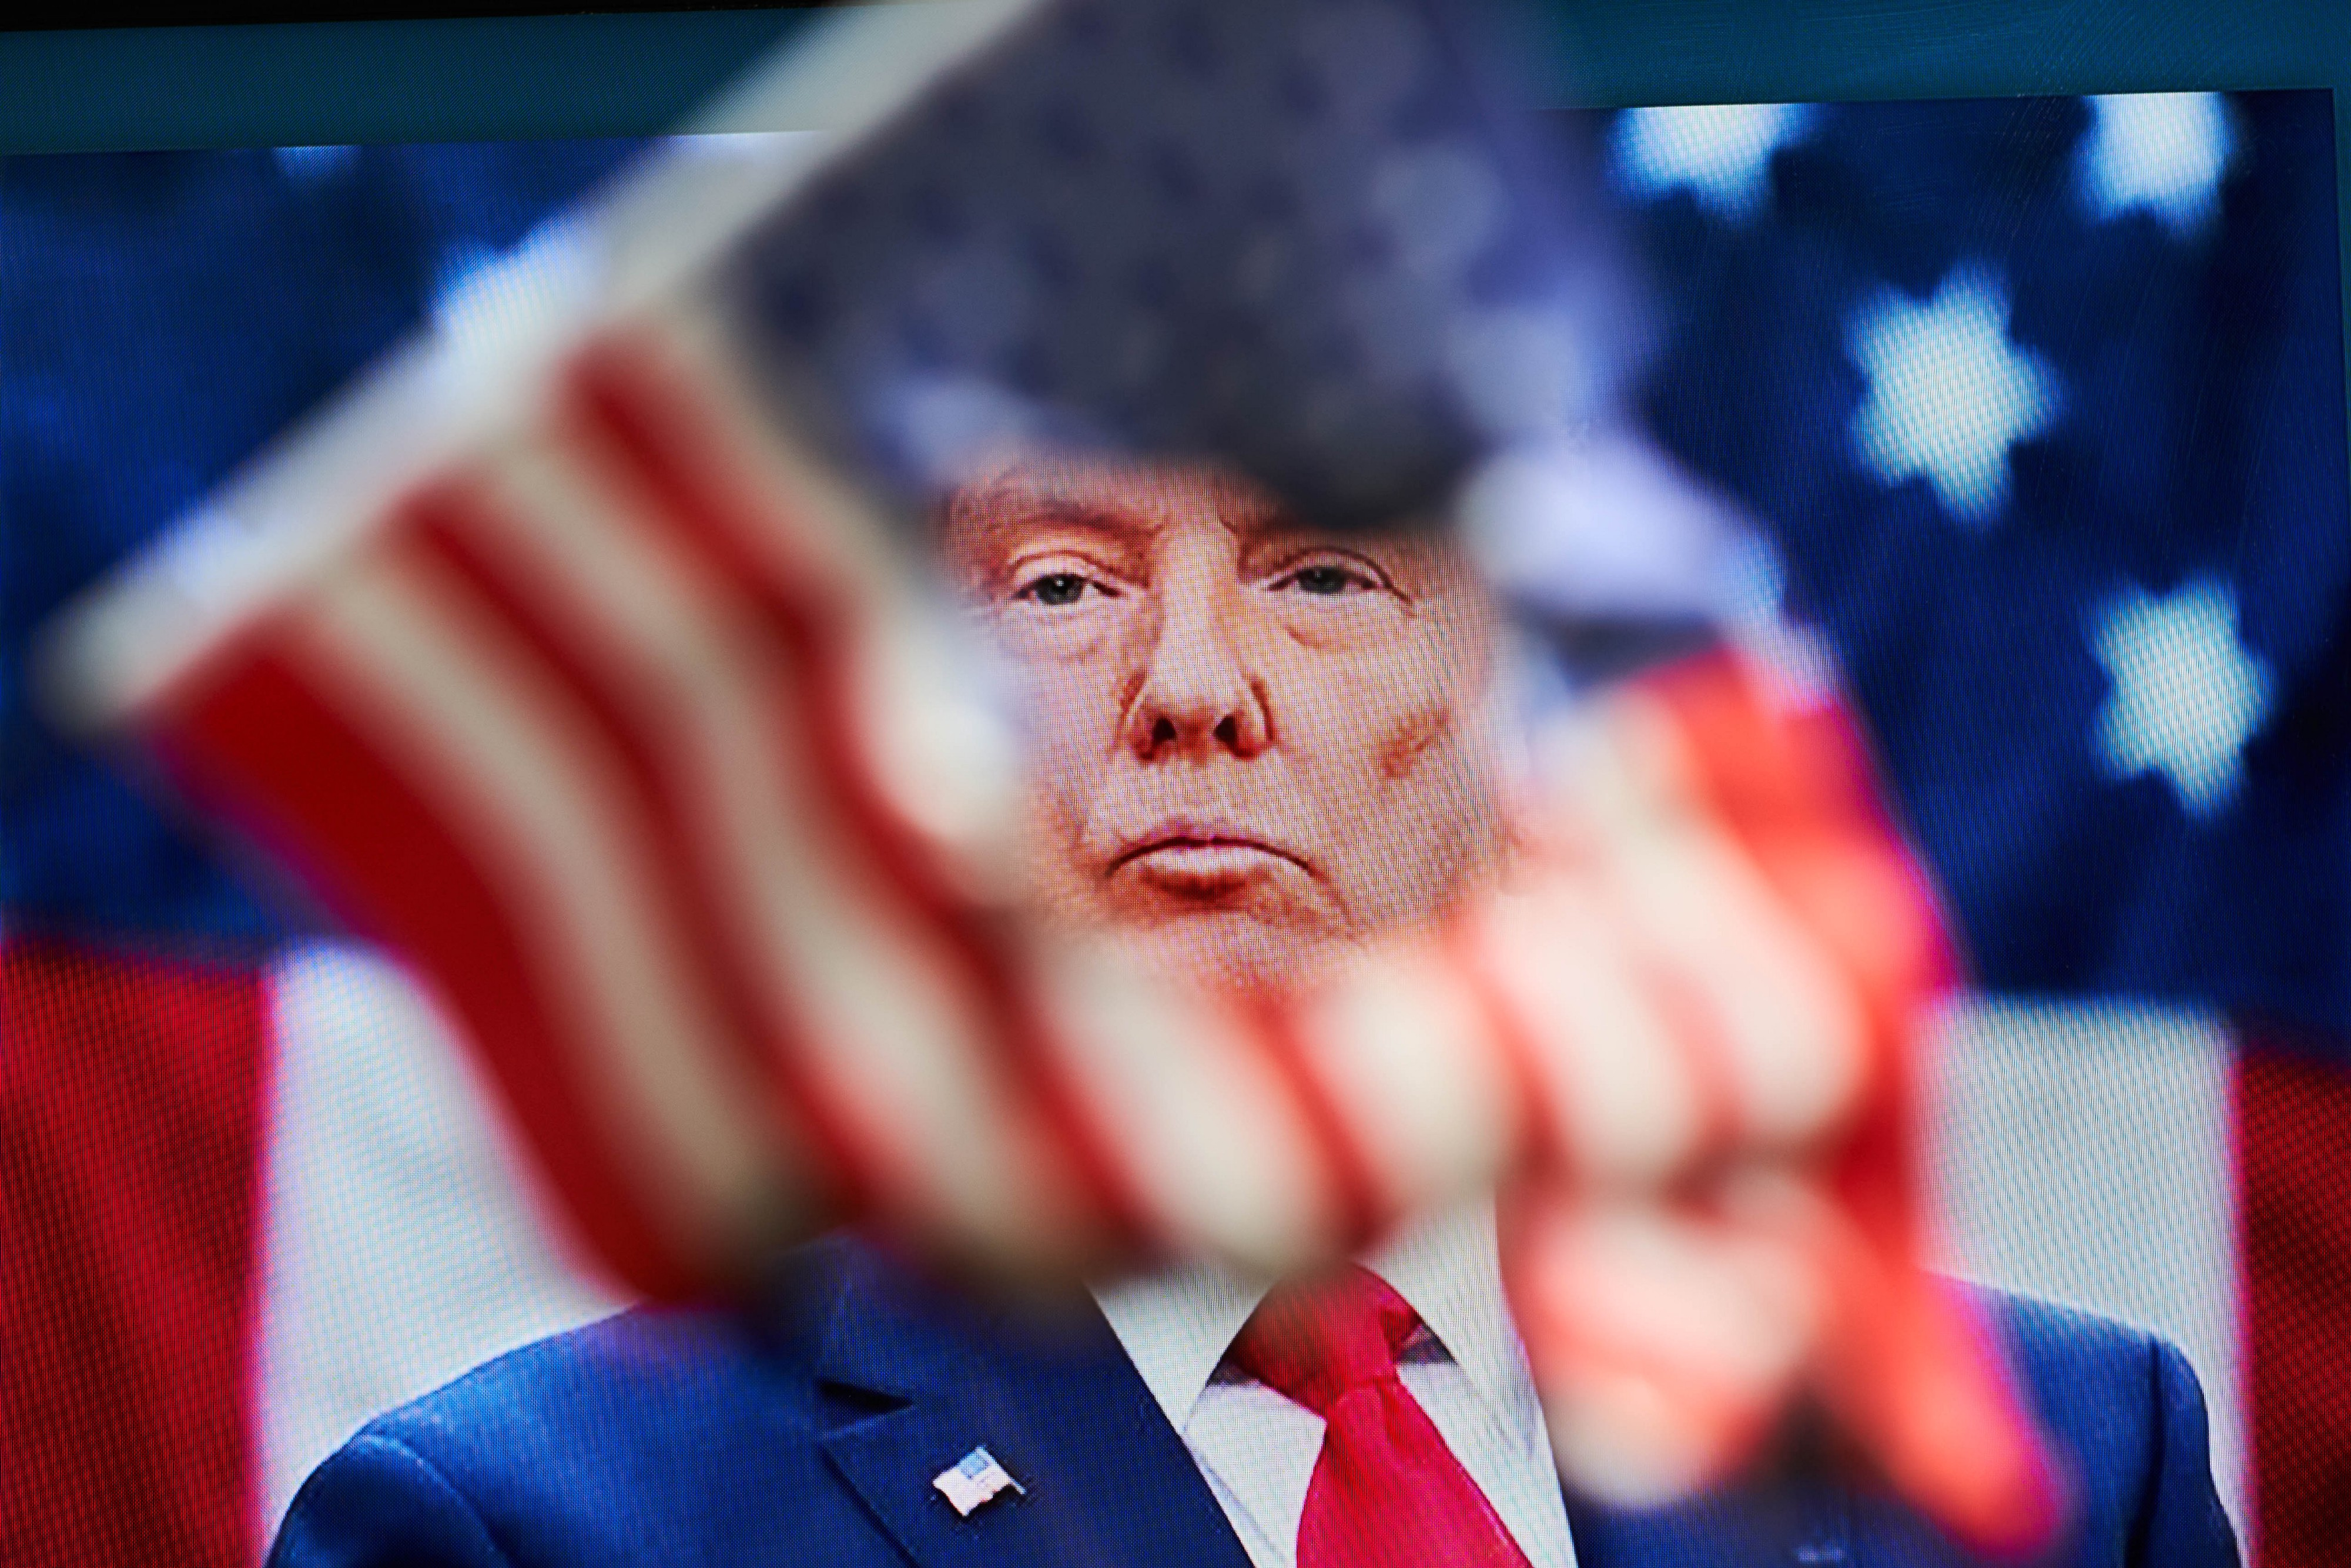 US President Donald Trump's face shown through a torn US flag